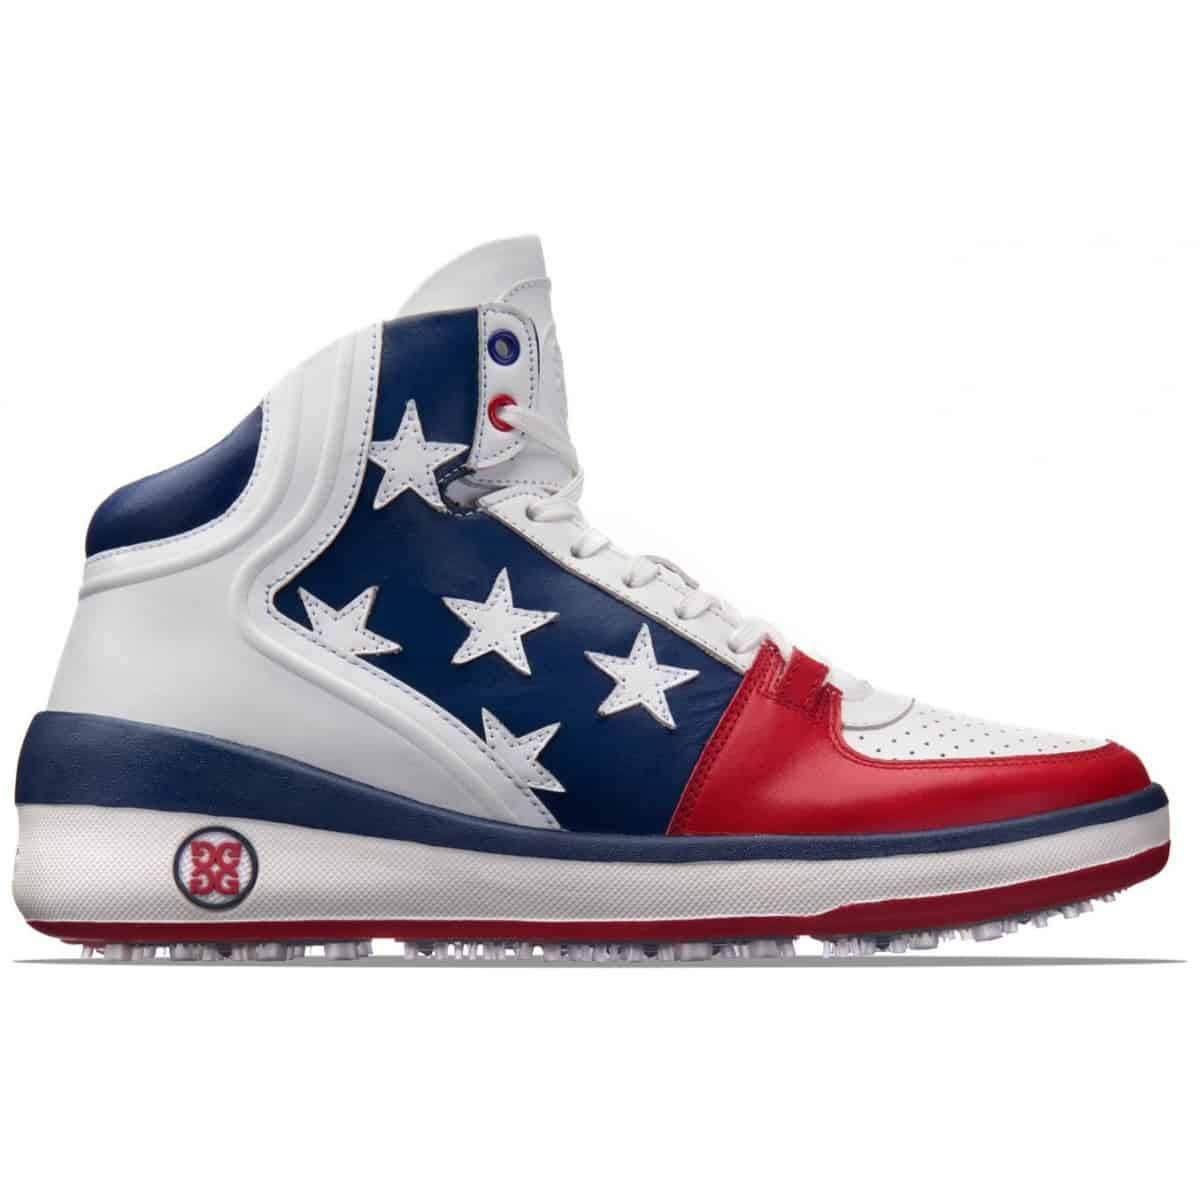 GFORE Crusader Golf Shoe American Flag Theme